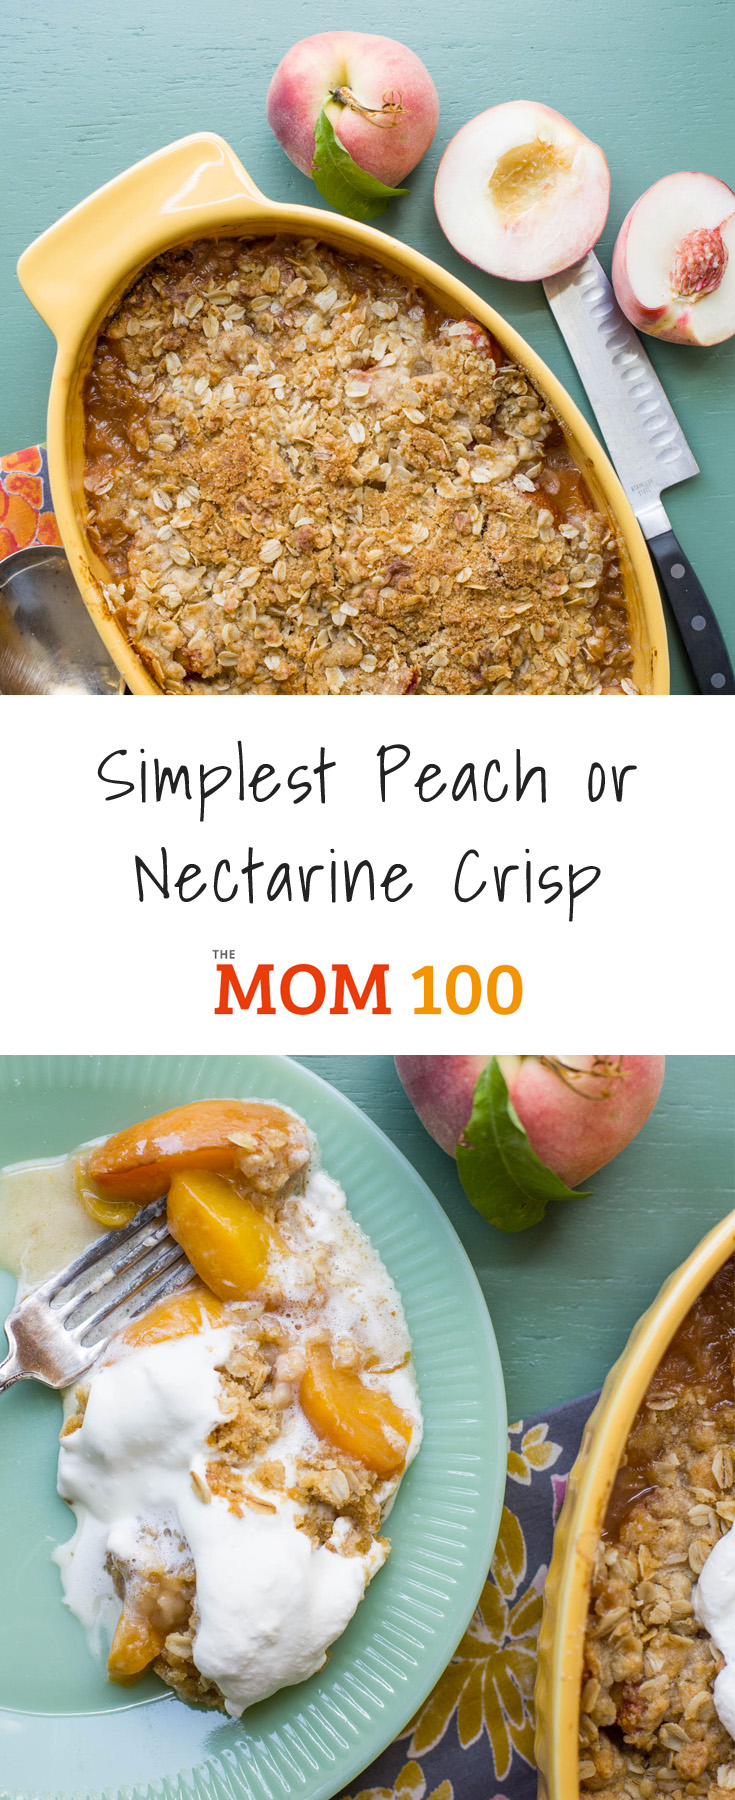 Any stone fruit will be great in this Simplest Peach or Nectarine Crisp, as long as it's perfectly ripe and sweet (but not too soft).